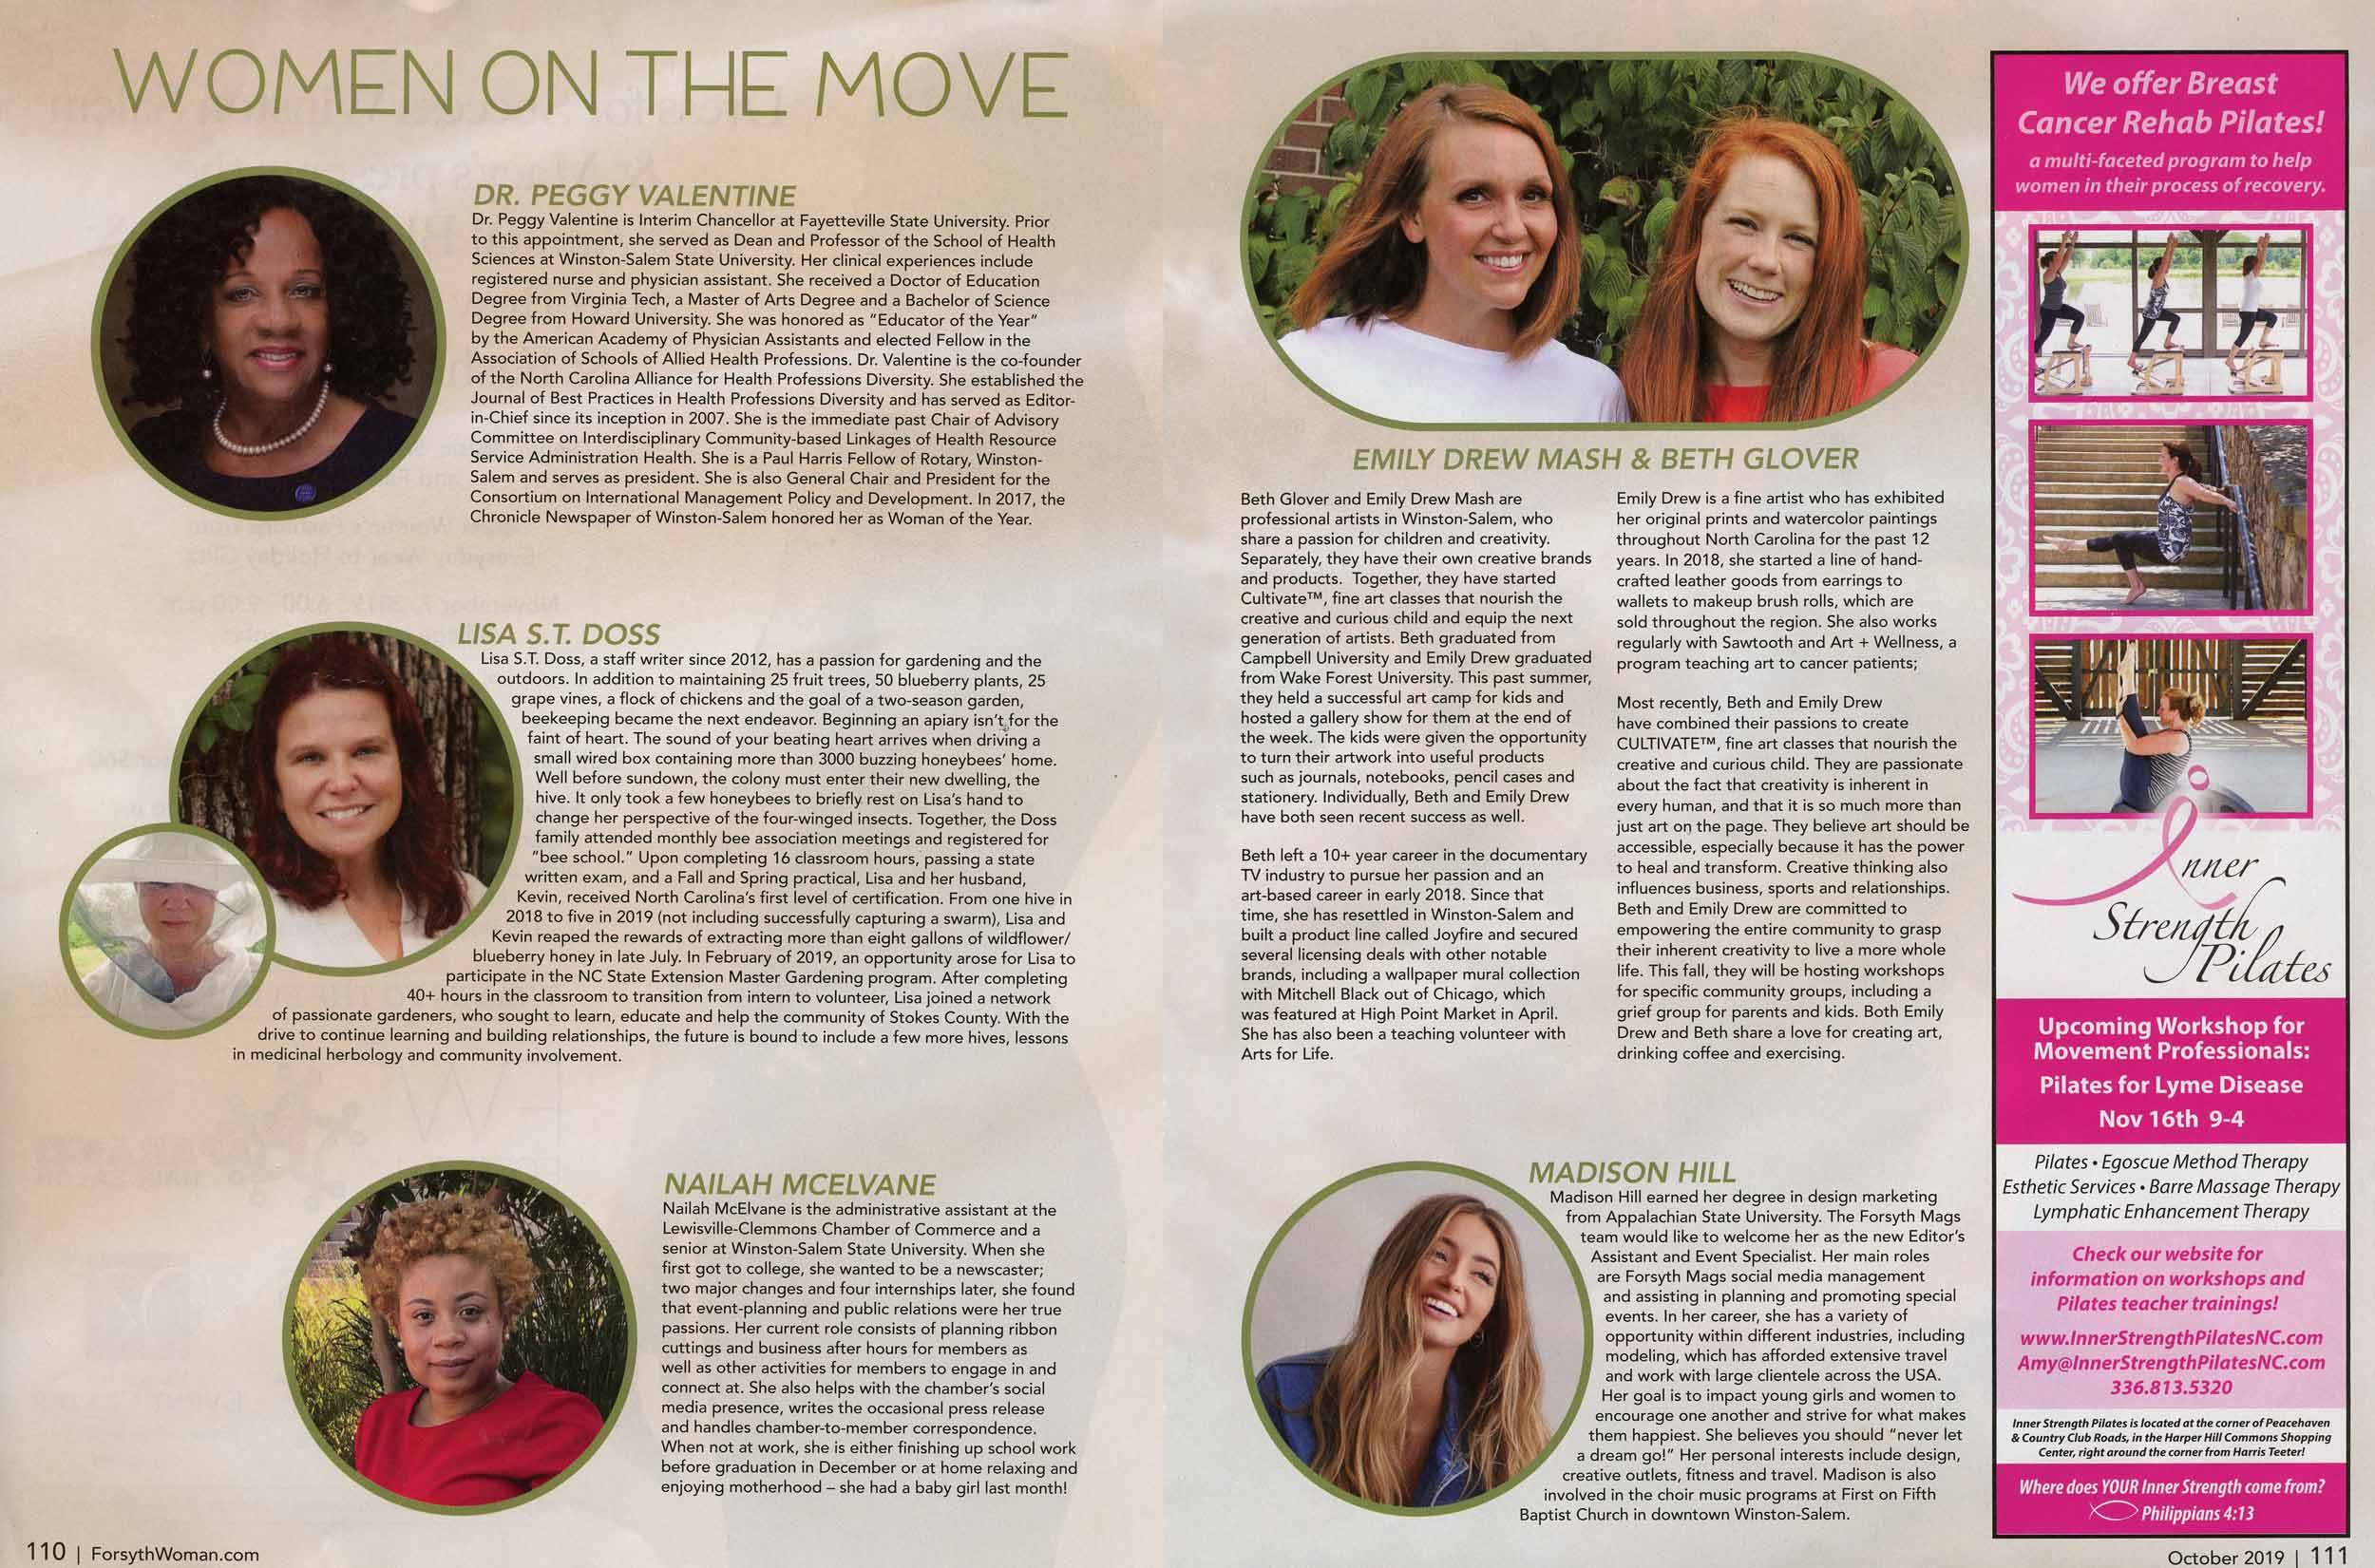 Forsyth Woman Magazine - October 2019 Issue